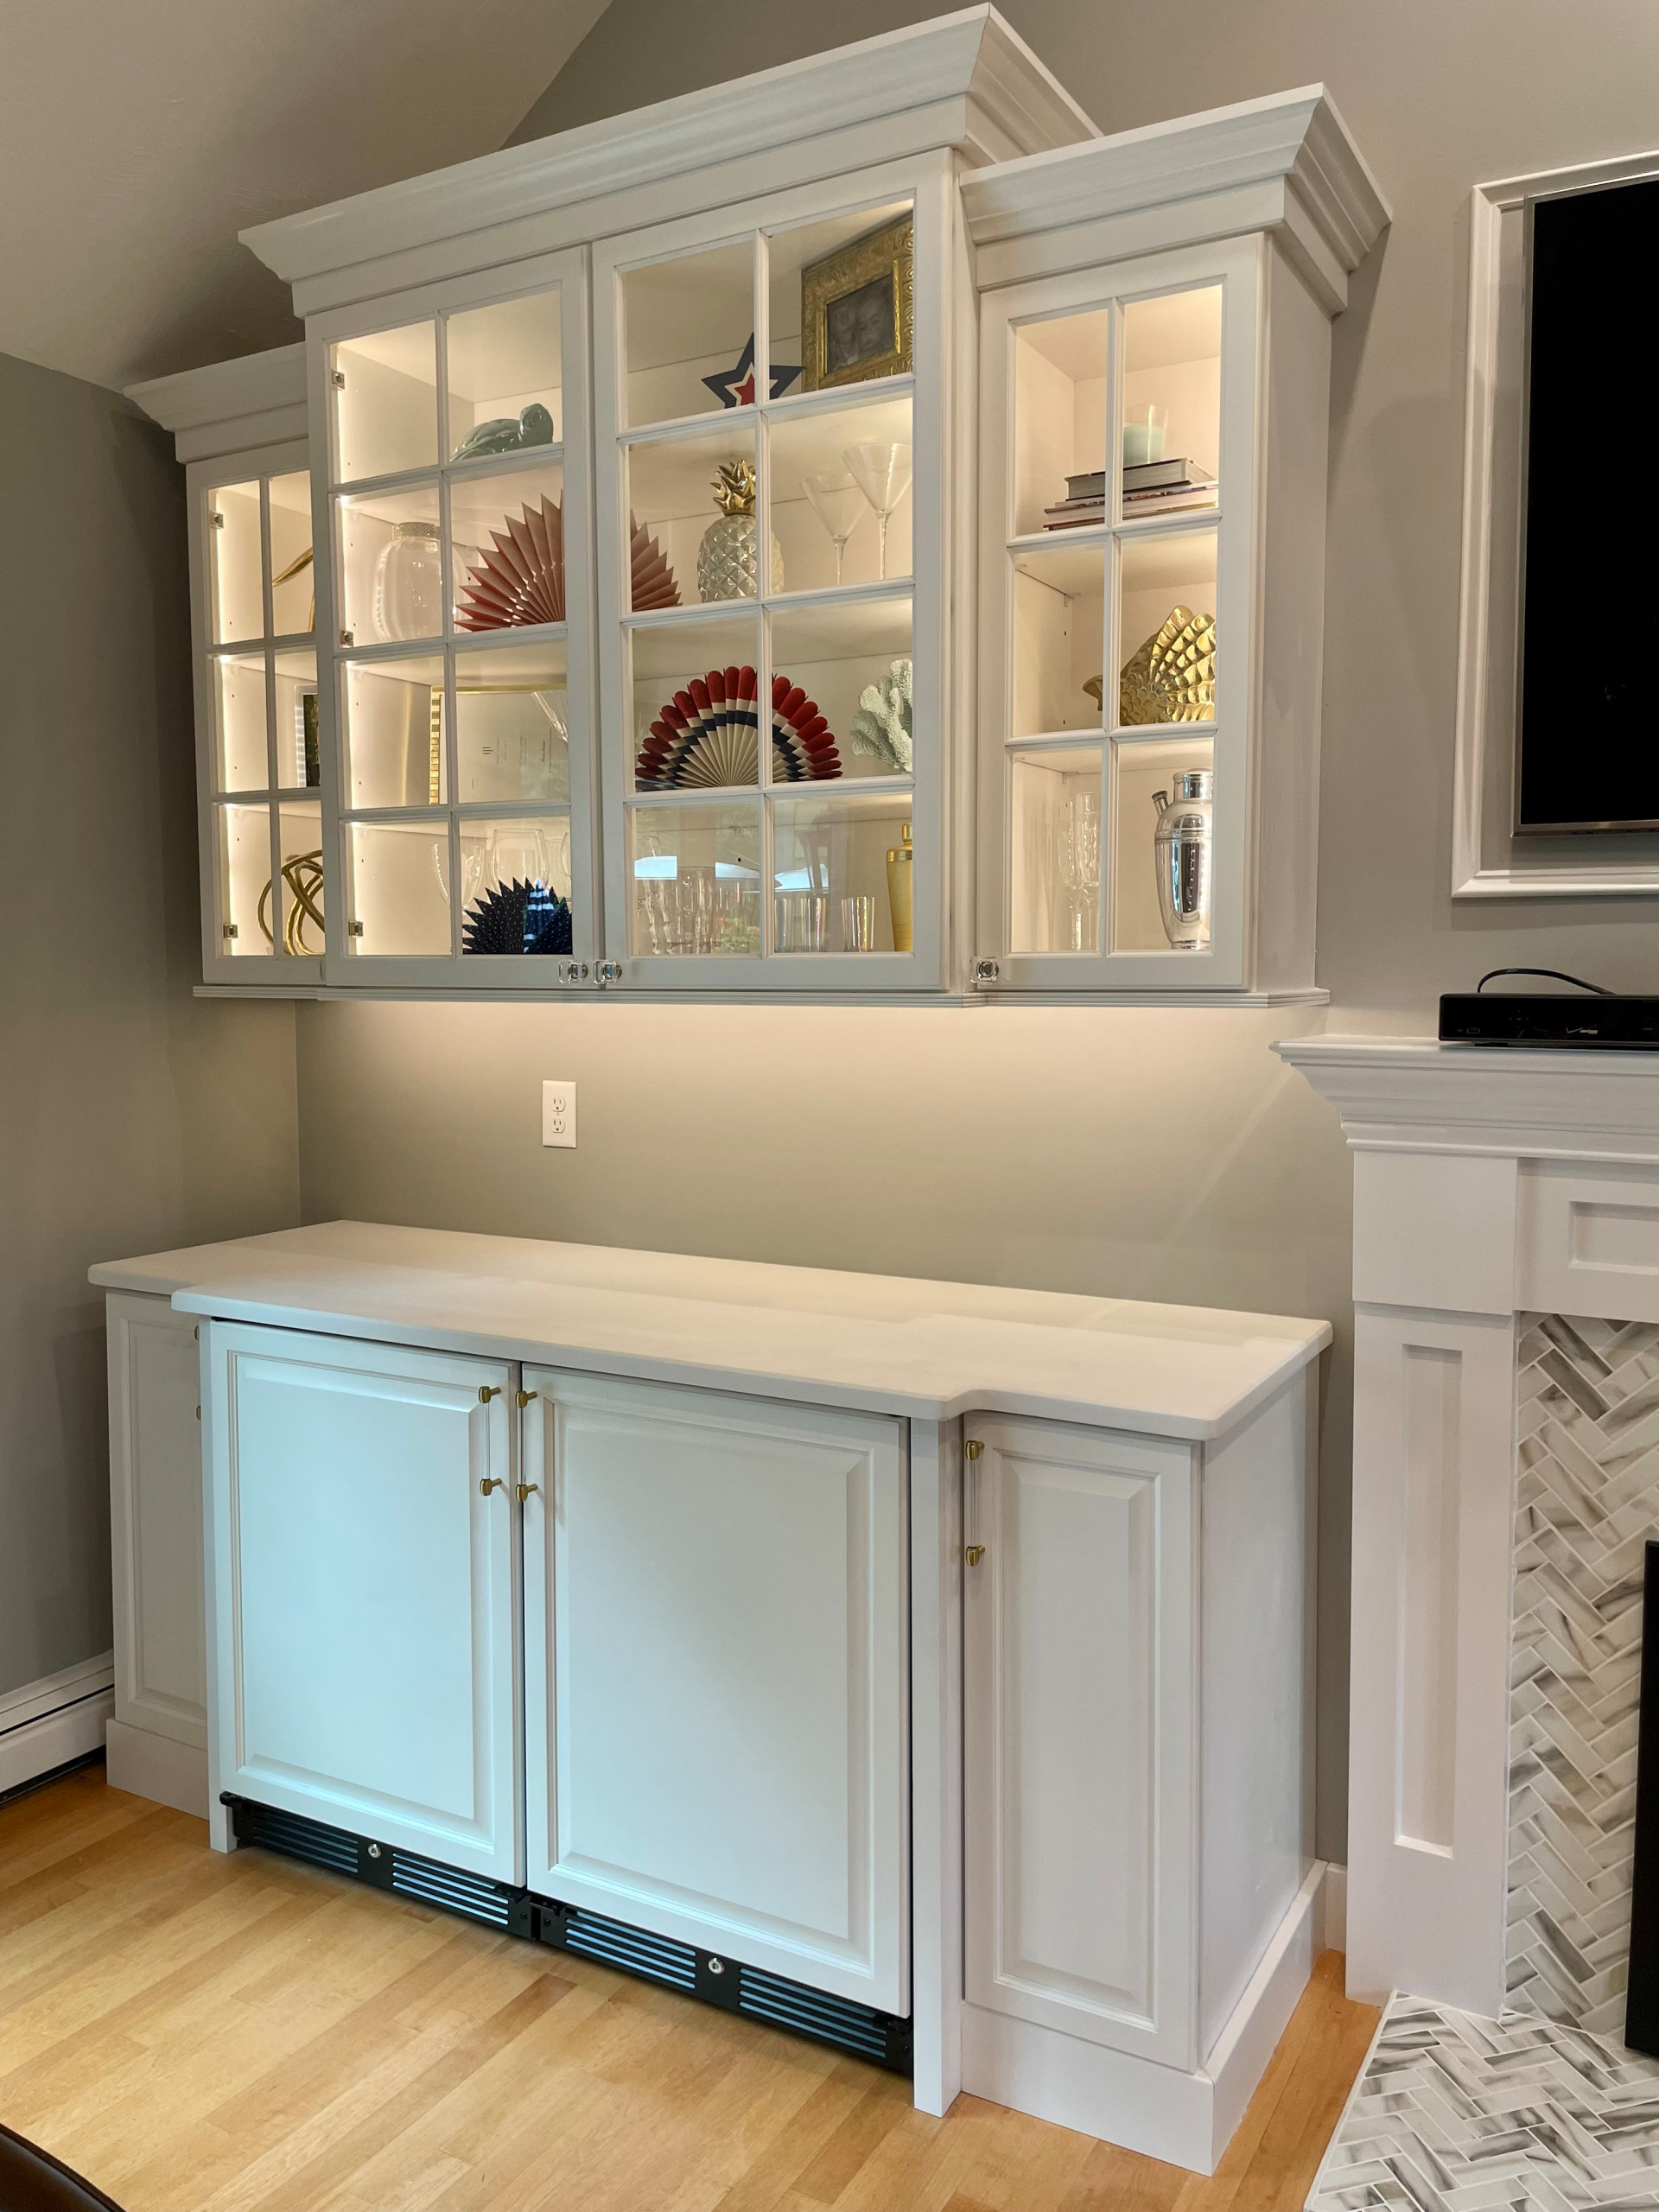 Marshfield Family Room Fireplace and Custom Cabinetry